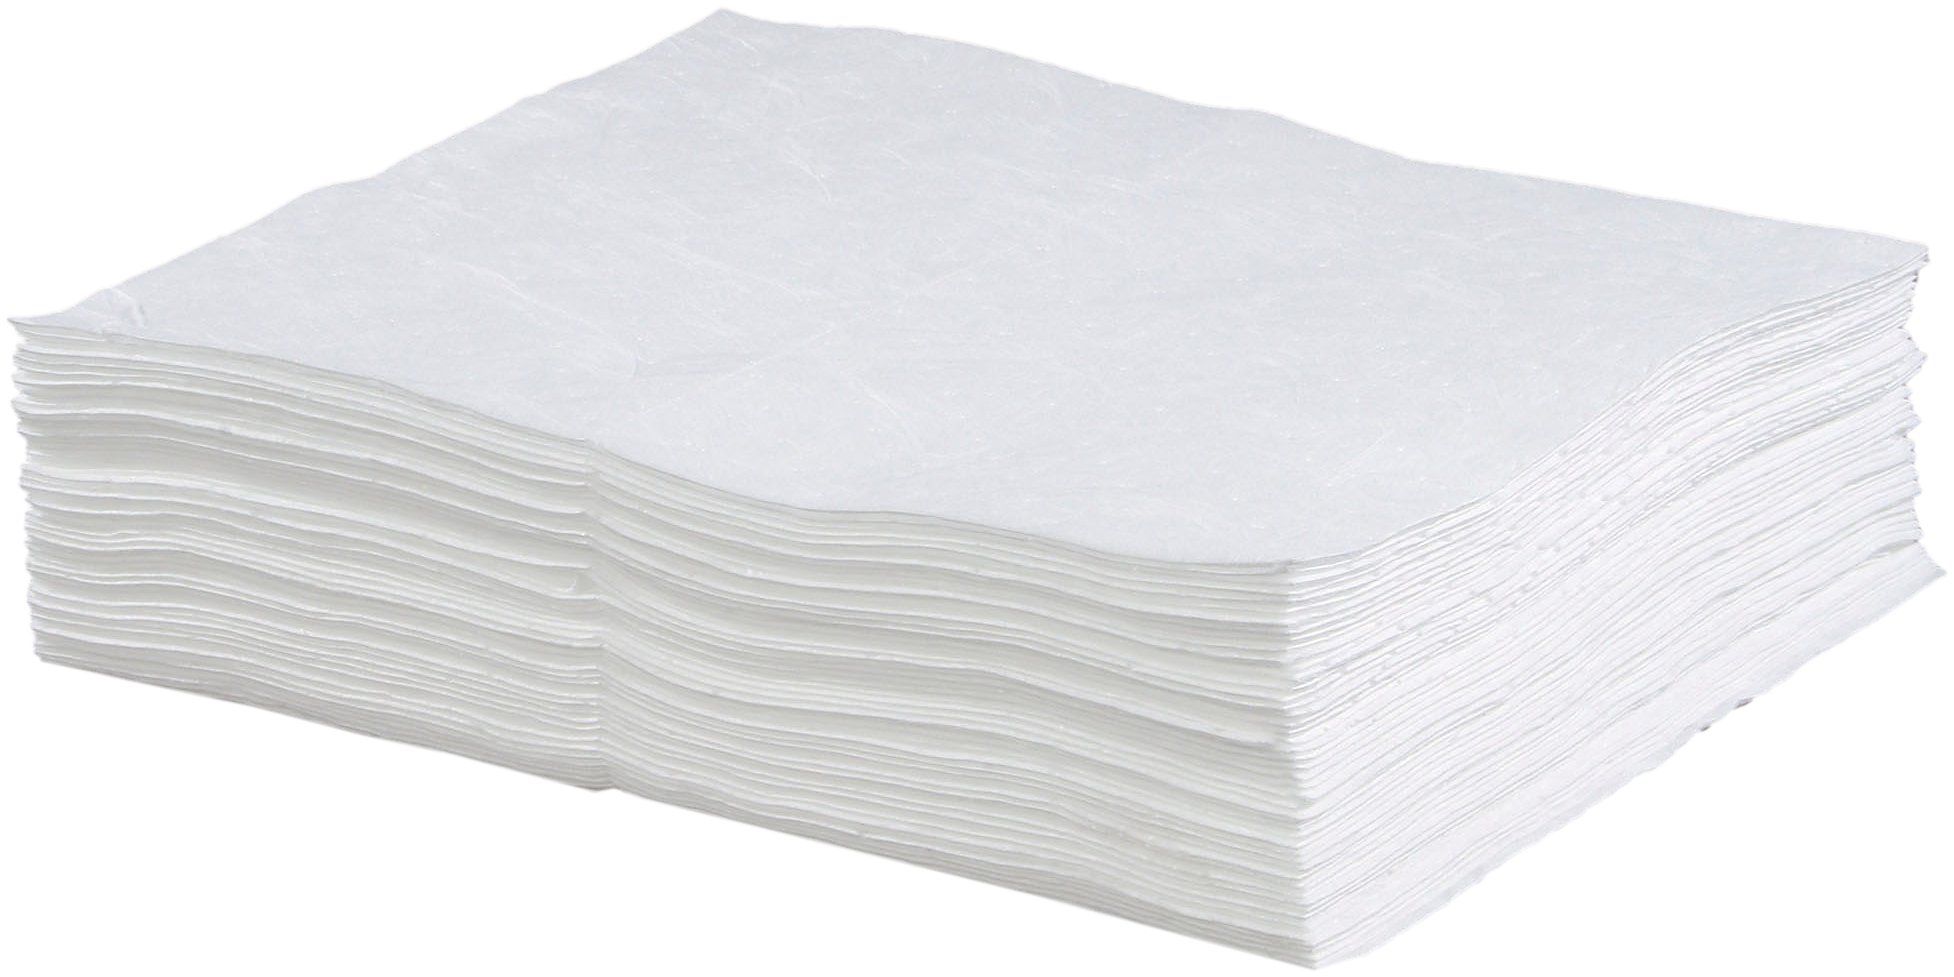 ESP 1MBWPB Polypropylene Heavy Weight Meltblown Oil Only Absorbent Bonded Pad, 18'' Length x 15'' Width, White (100 per Bale)